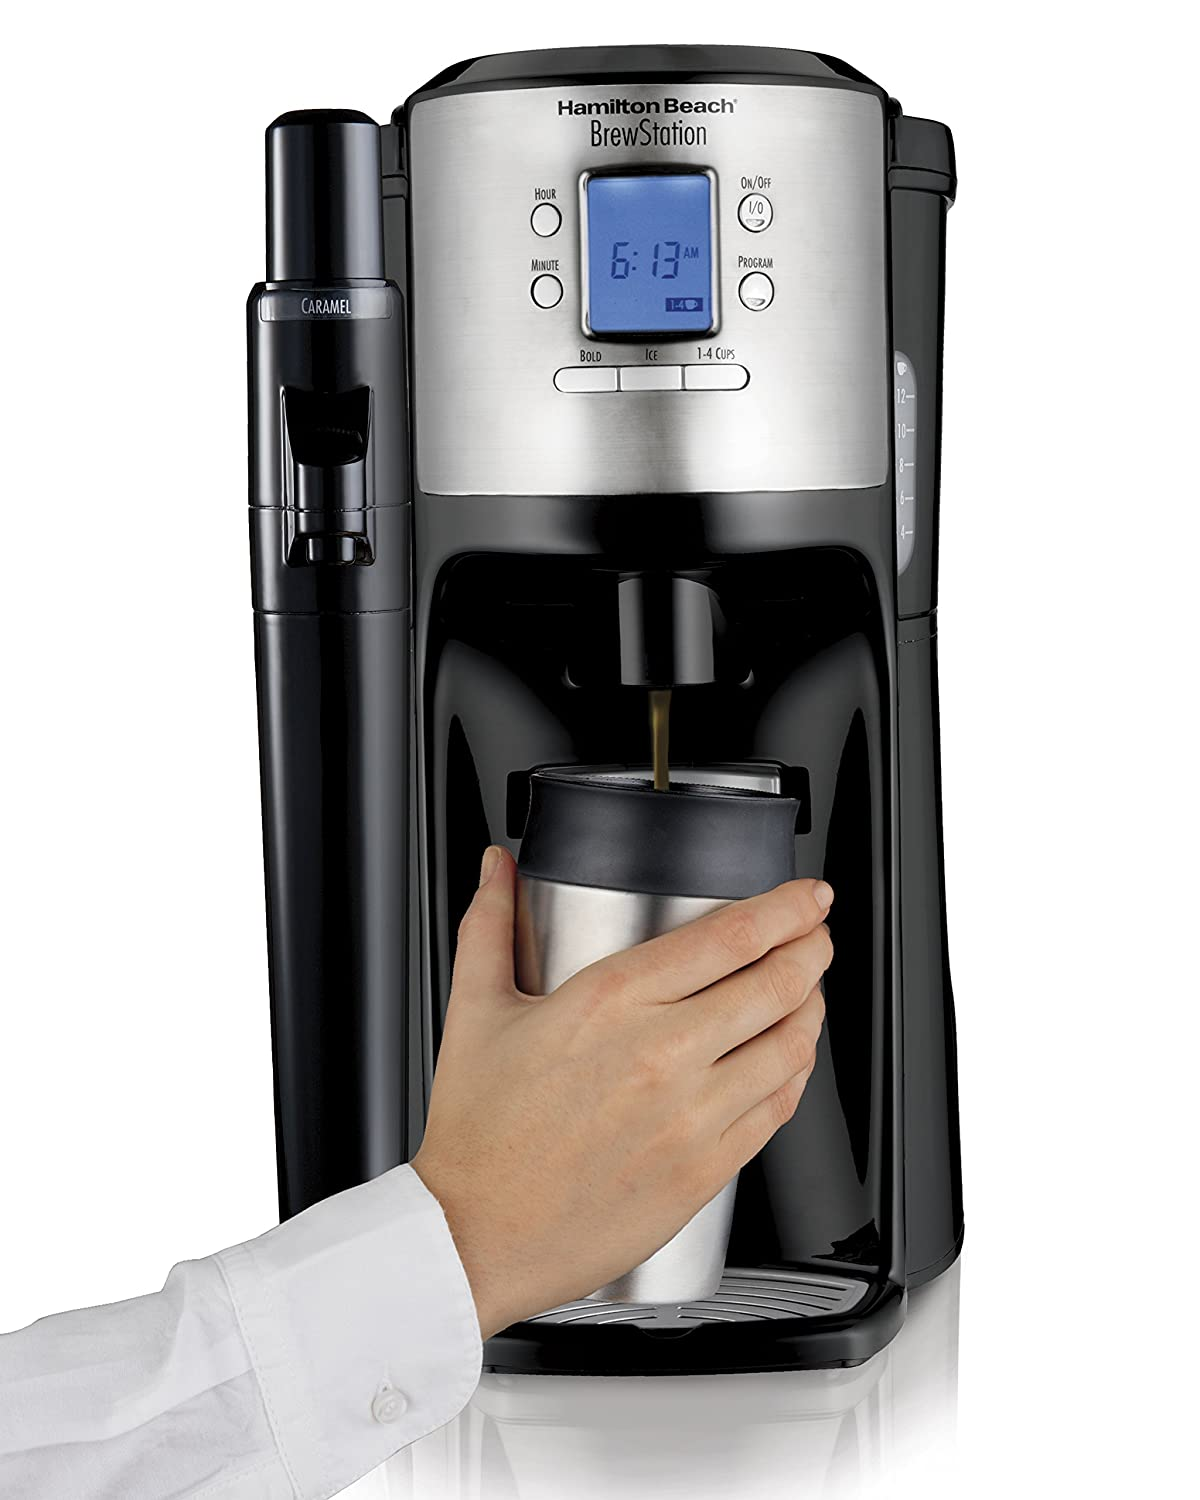 Hamilton Beach 49150 BrewStation with Flavor Dispenser Coffee Maker, Black